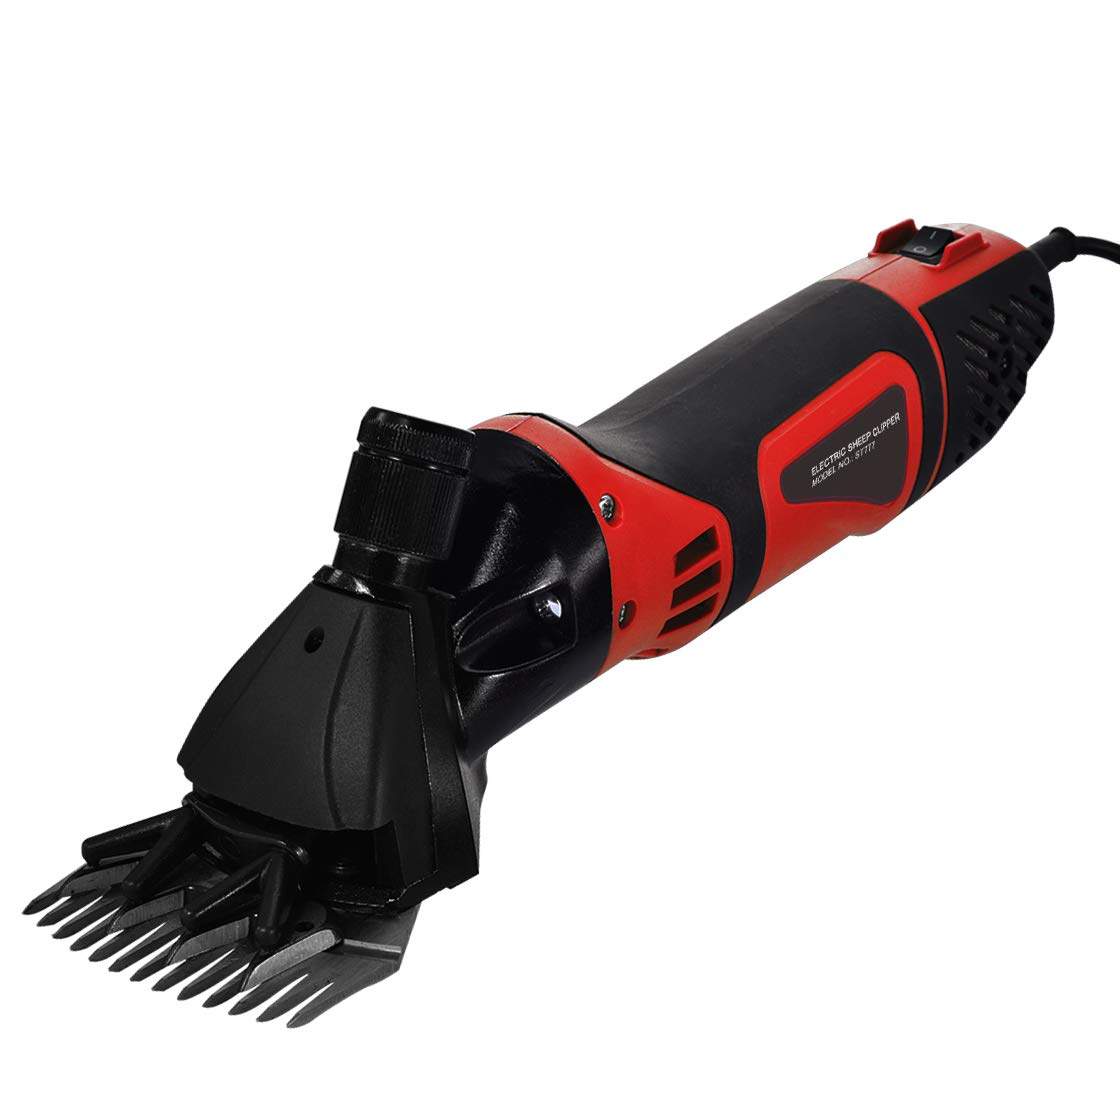 Sheep Shears, NewElectric Sheep Shears for Cattle, Sheep, Horses and Almost All Other Livestock, Upgraded Power is Stronger, More Efficient, Easy to Control Than Old Models. (red)